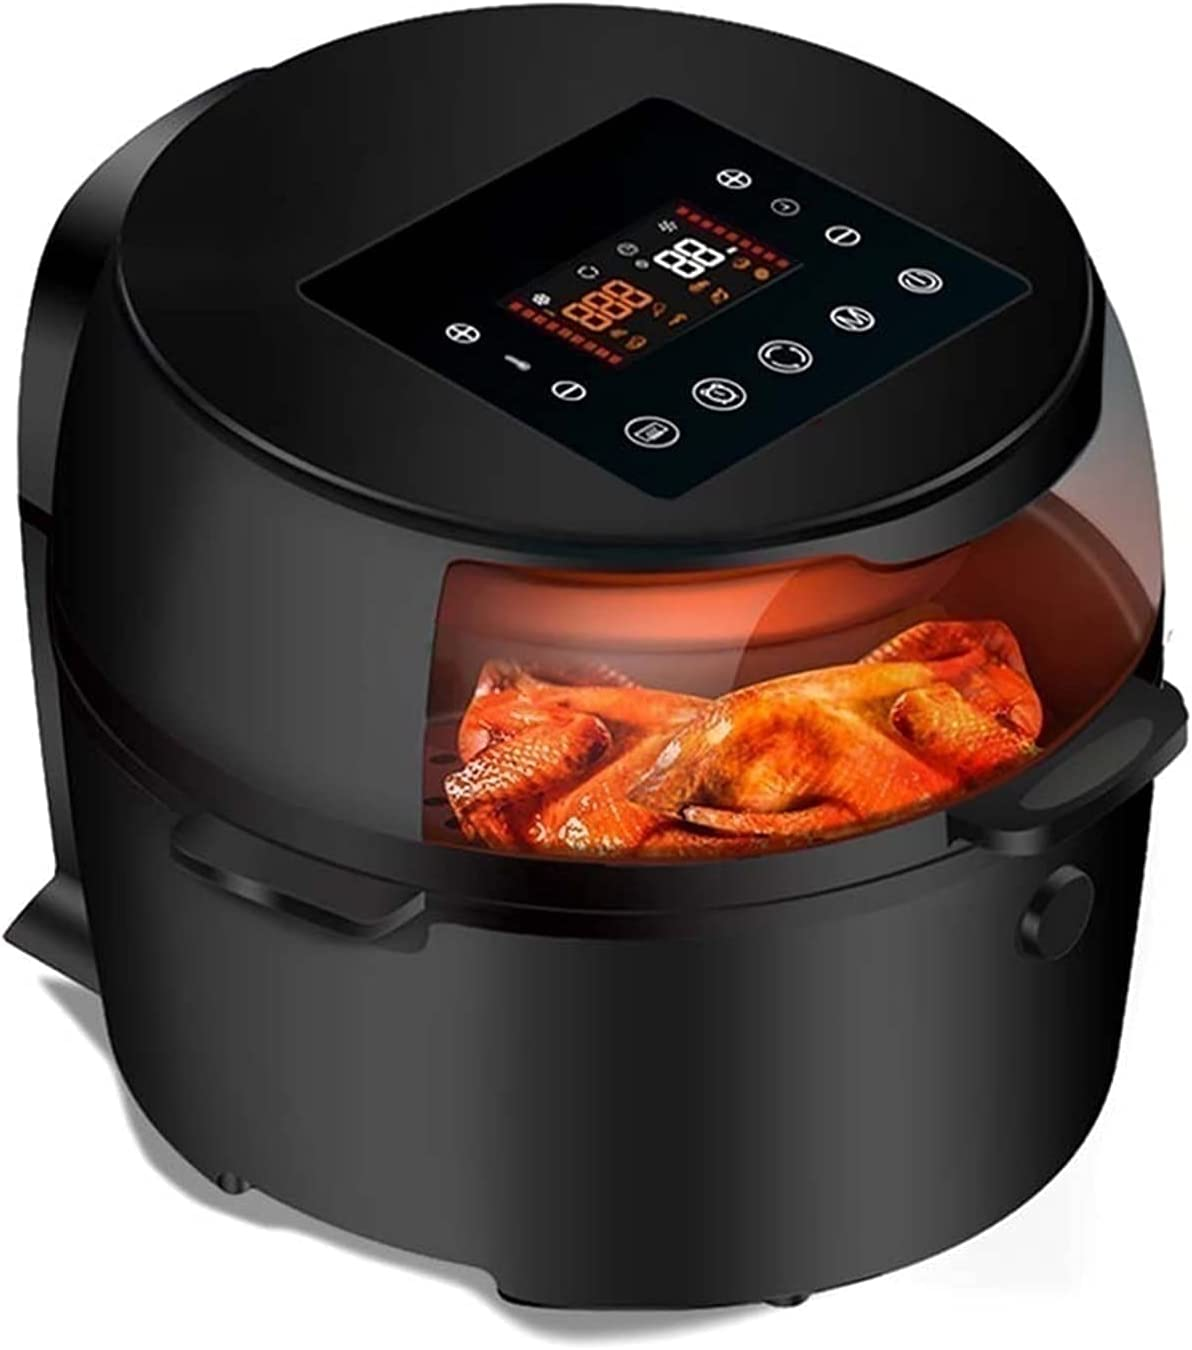 Electric Oven Air Fryer, Multifunction Deep Fryer Oil Free Home Intelligent Health Functional Food 8L Large Capacity (Color : Black) Oil-free healthy cookware